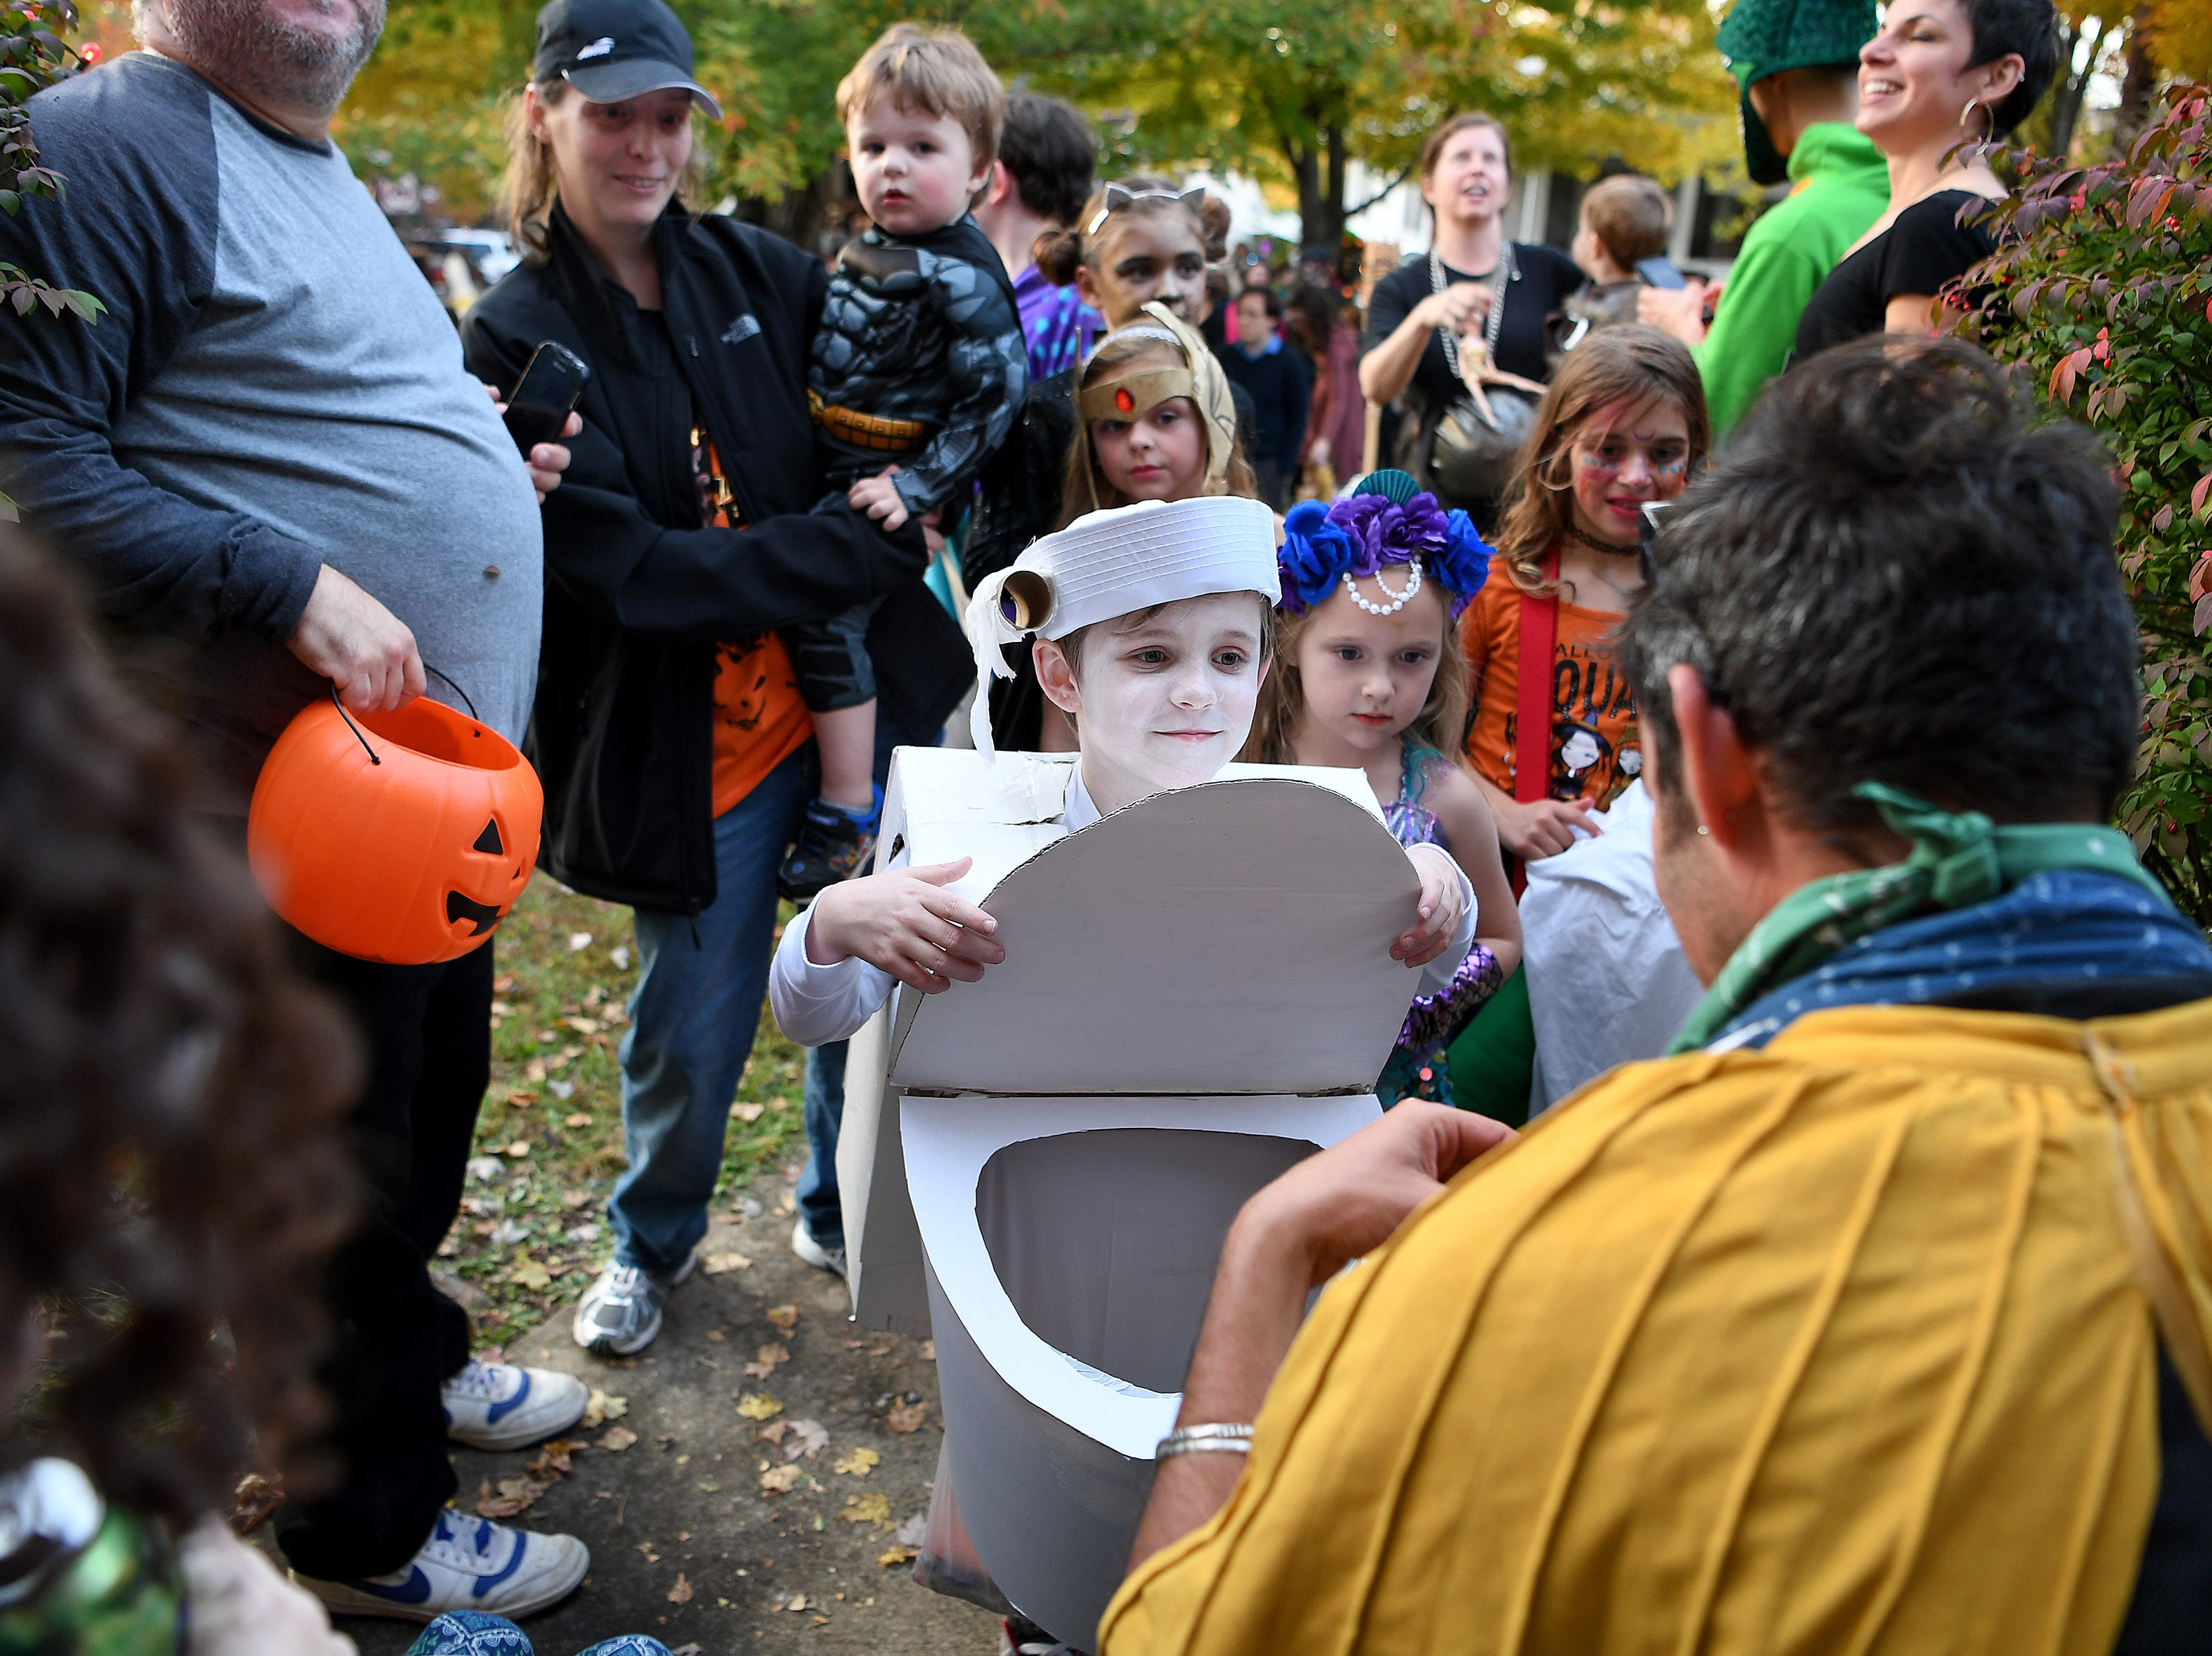 Peyton Carleton, 6, opens up the seat on his toilet costume as he trick-or-treats at a house on Vermont Avenue during their annual Halloween celebration on Oct. 31, 2018.